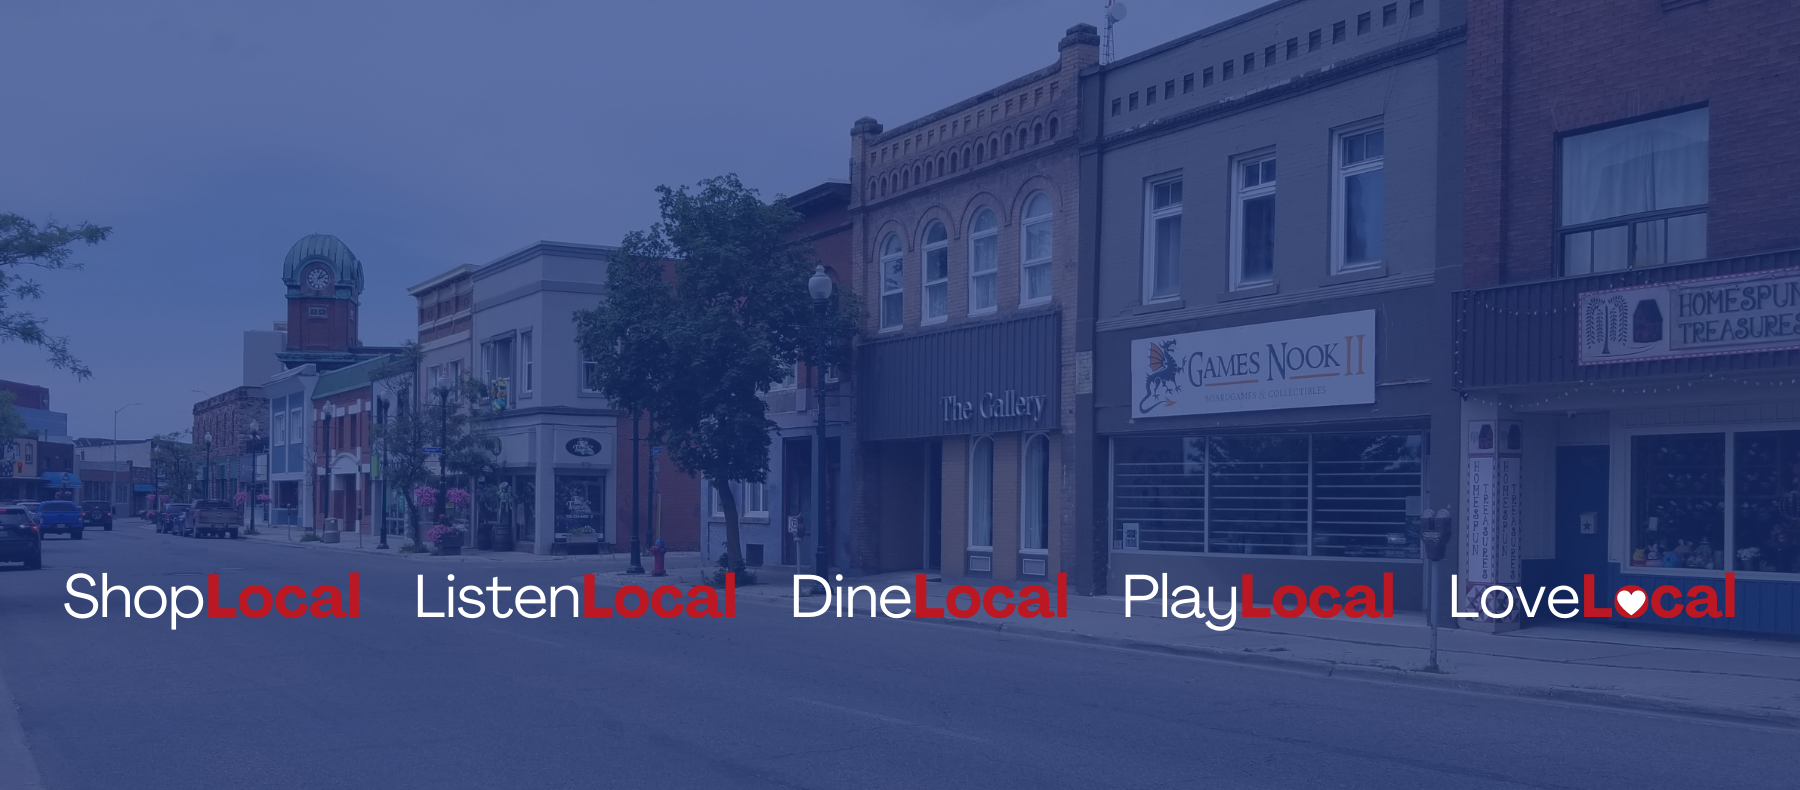 ShopLocal-ListenLocal-DineLocal-PlayLocal-LoveLocal-(2).png